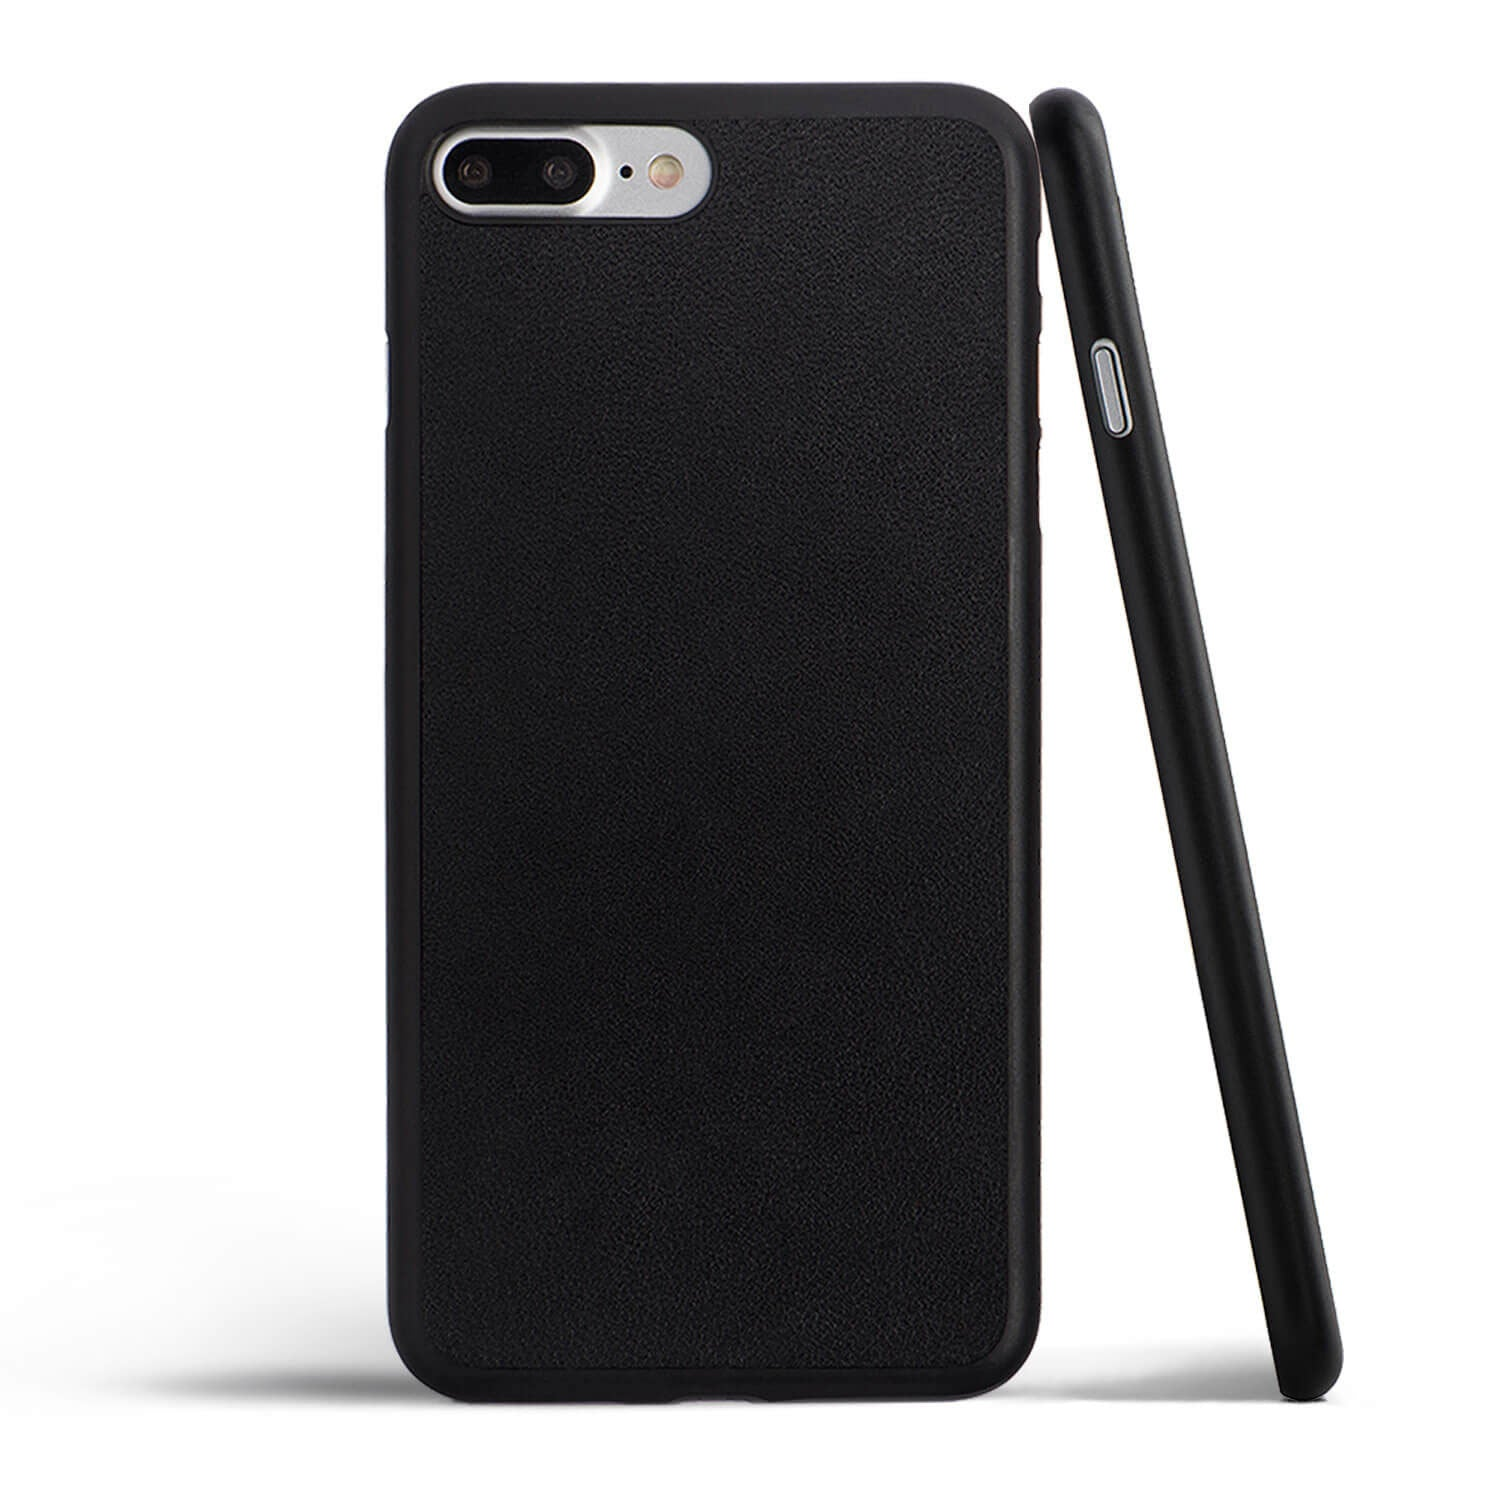 thin leather iPhone case